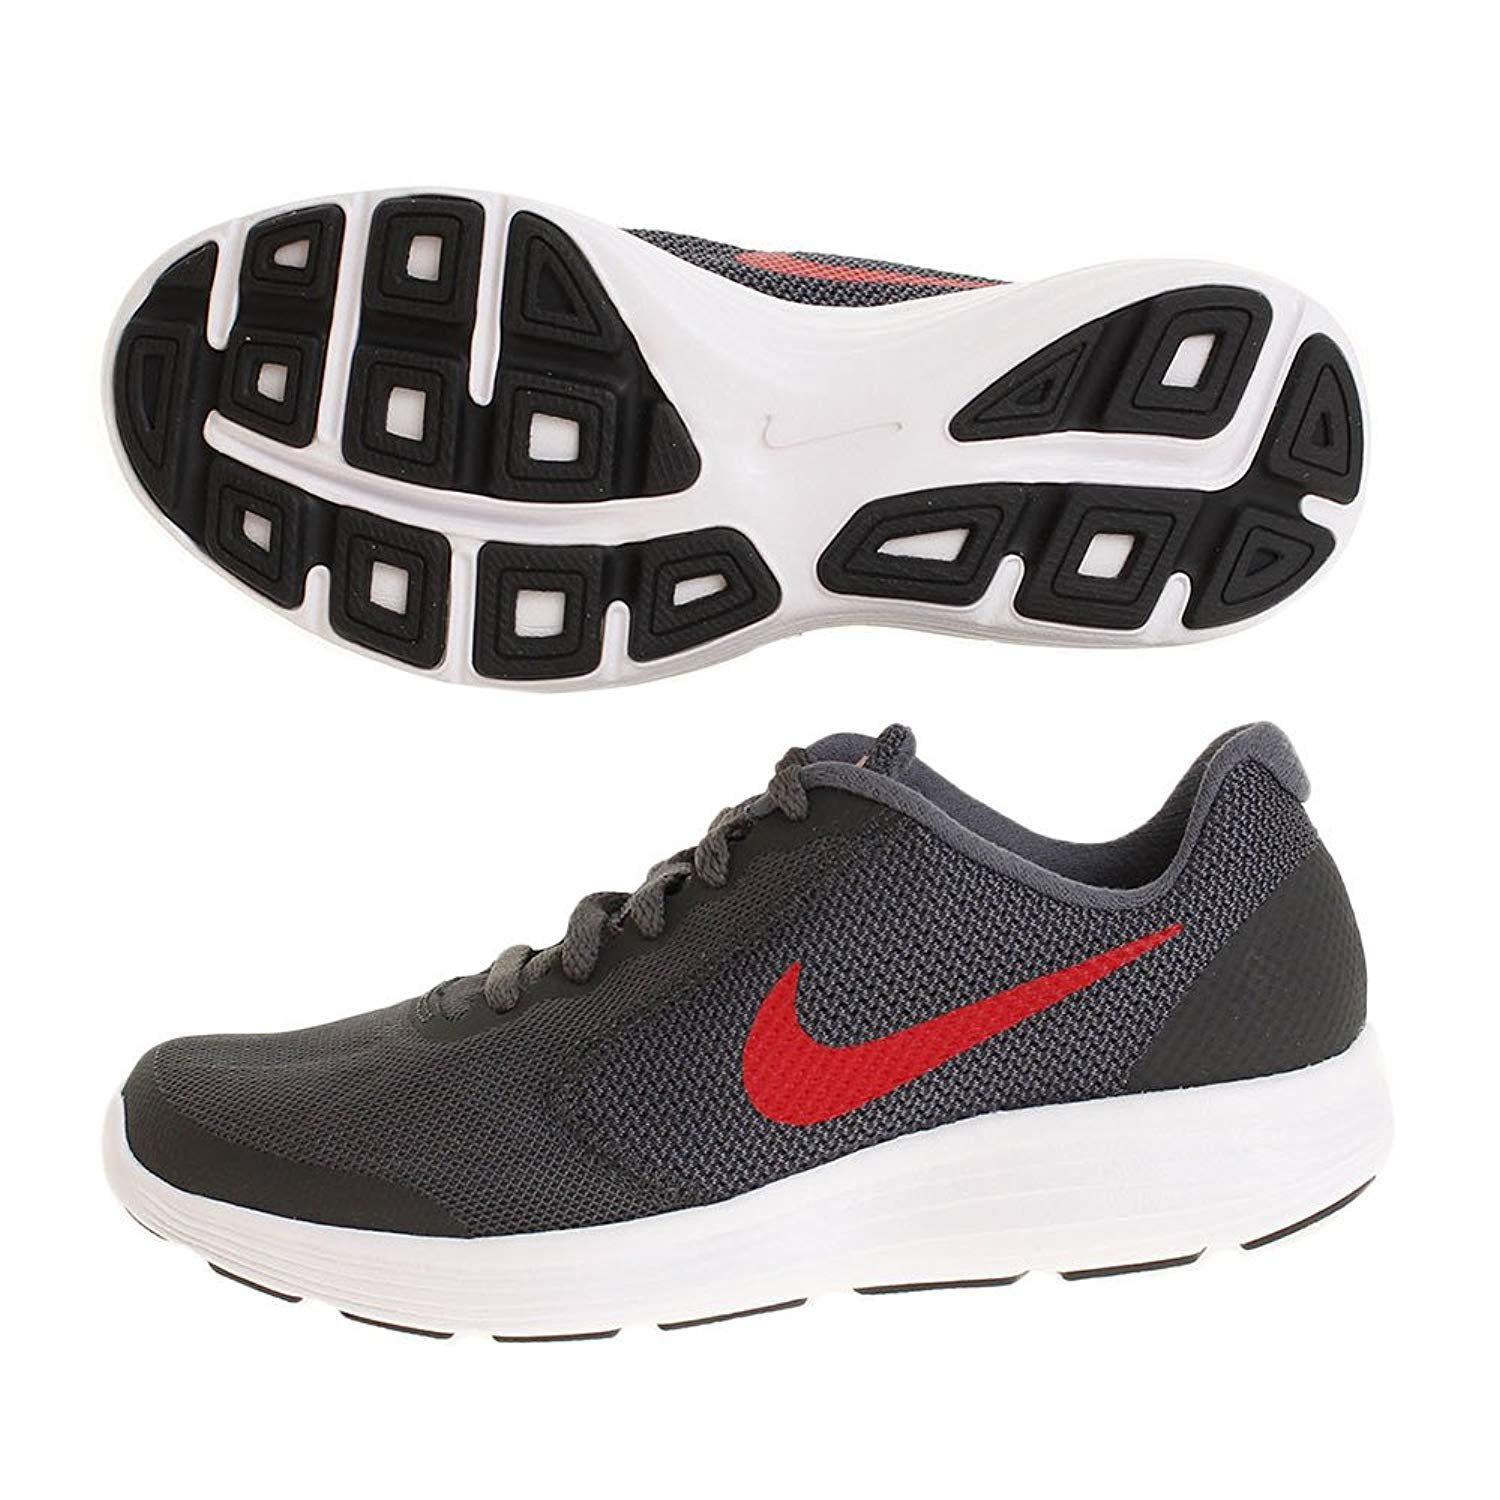 quality design 6d66f bde10 NIKE-Kids-039-Revolution-3-GS-Running-Shoes